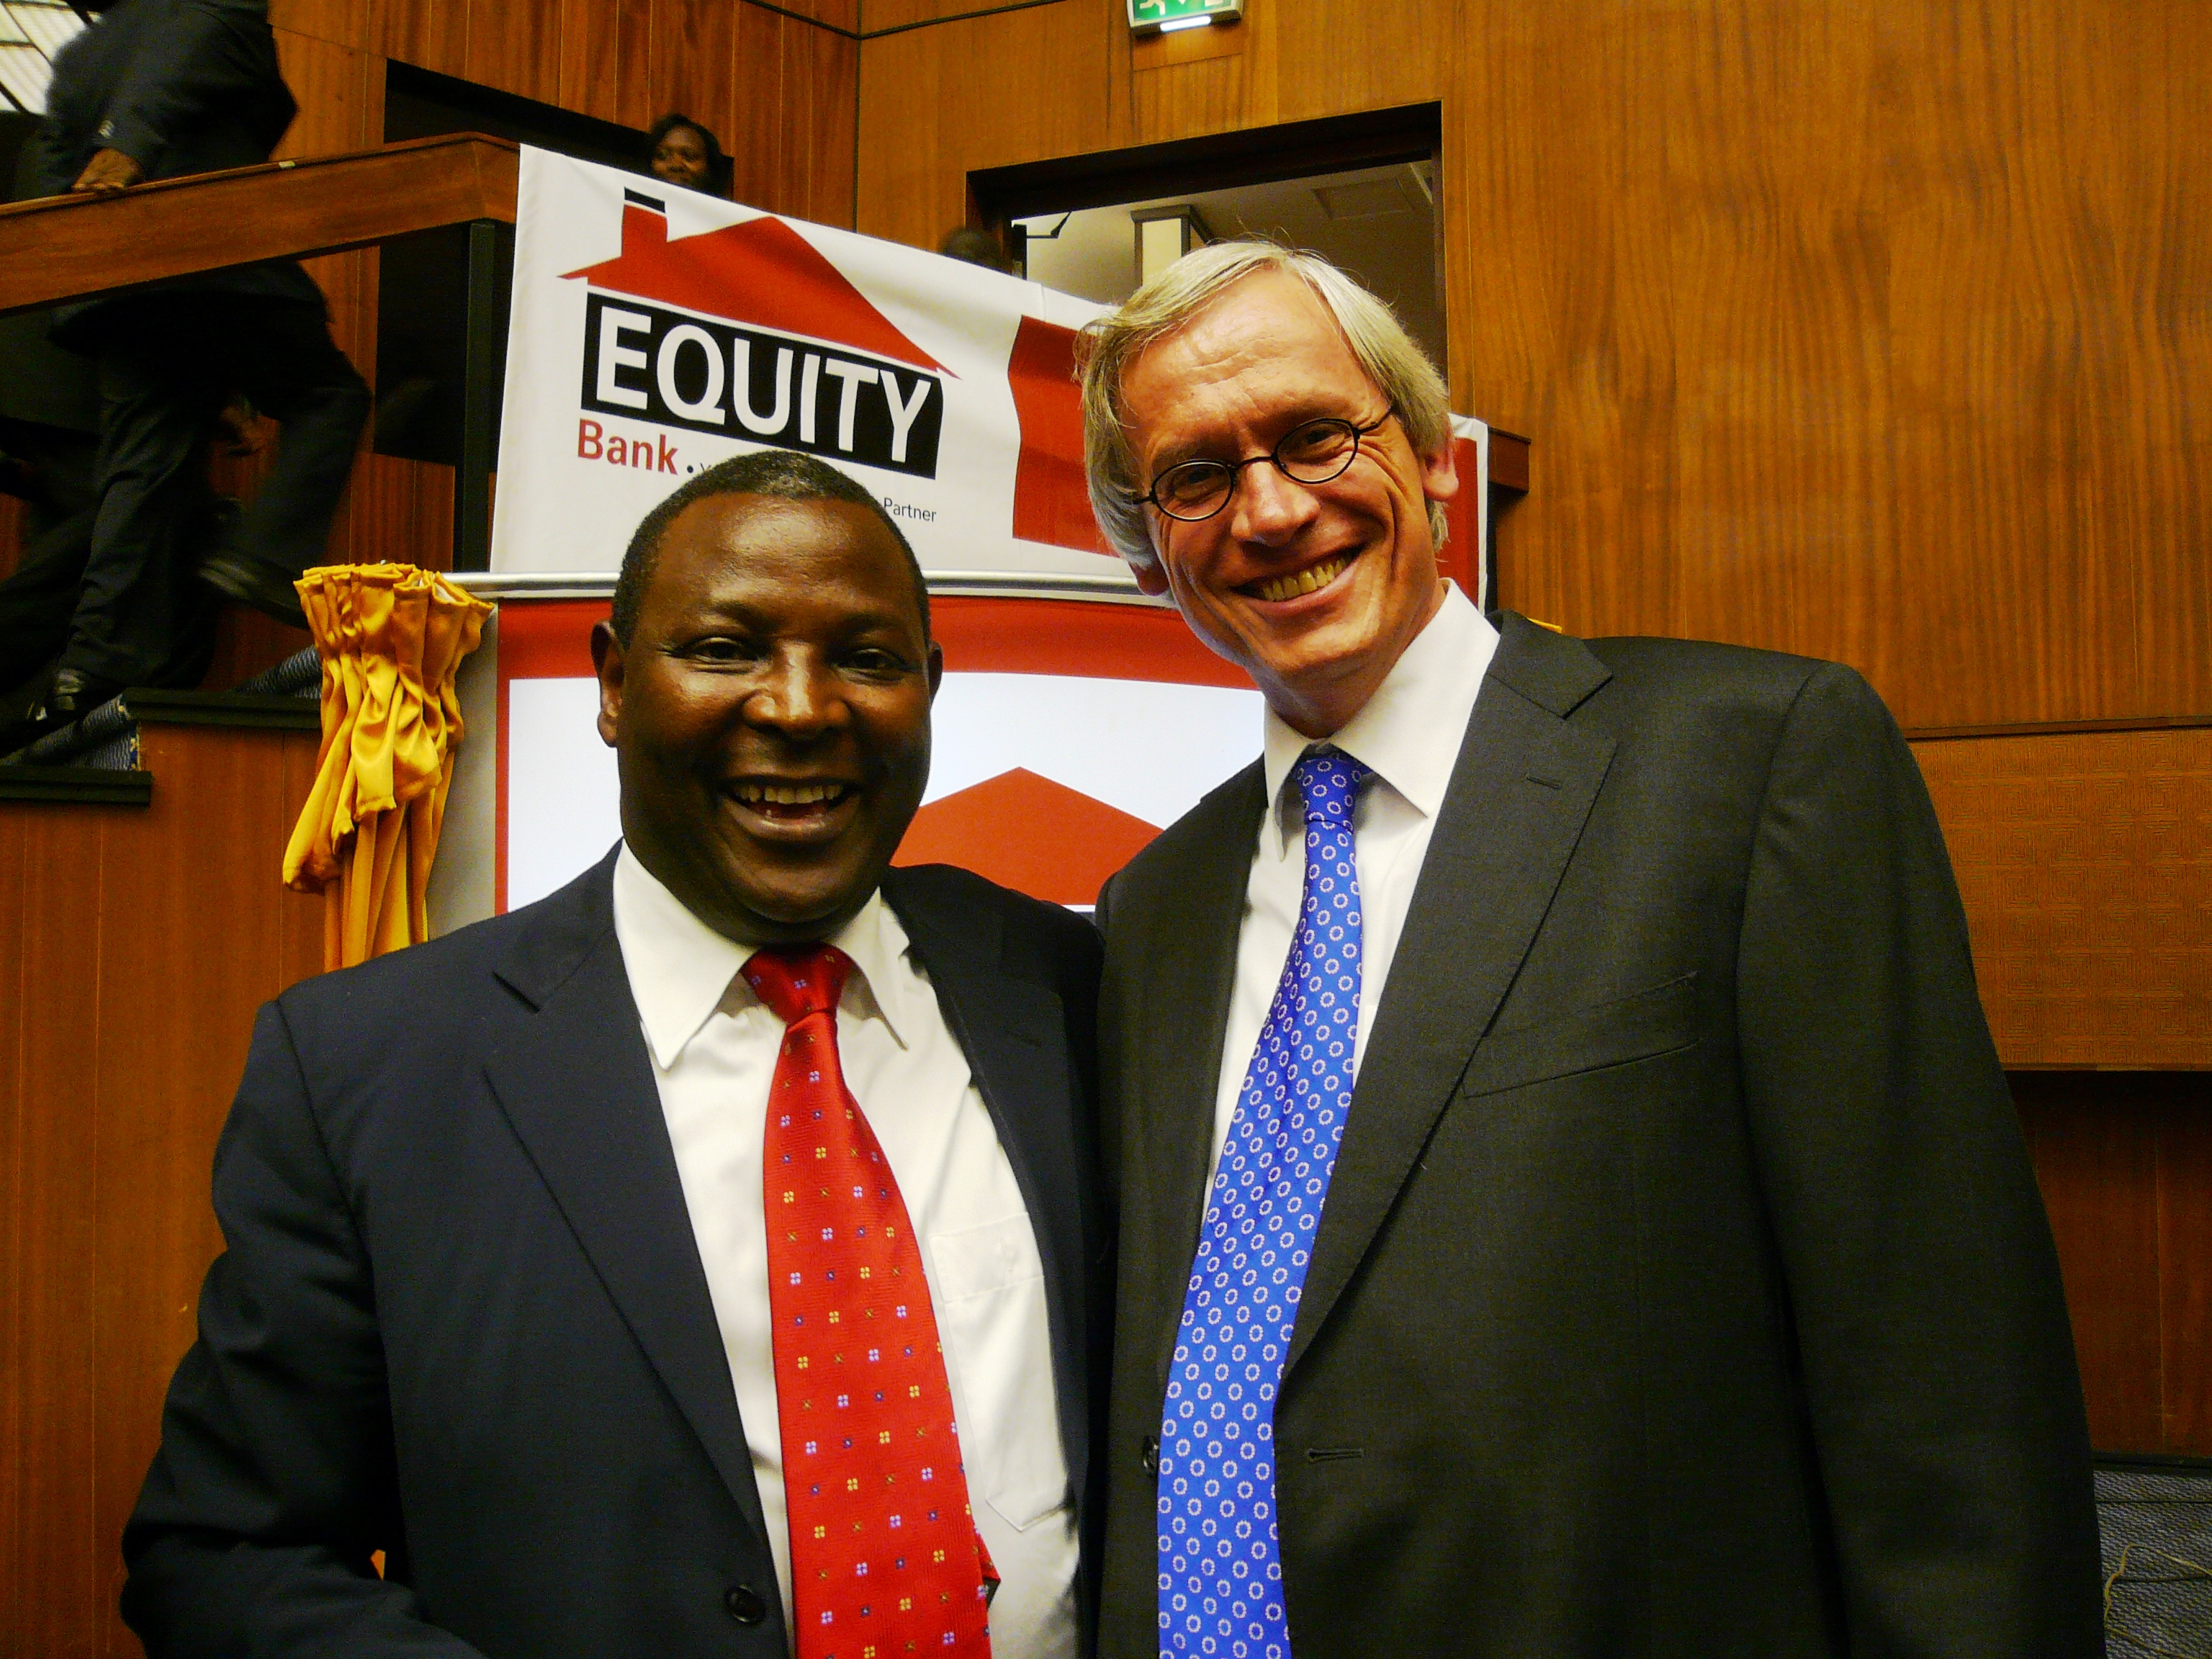 Equity Bank C.E.O James Mwangi